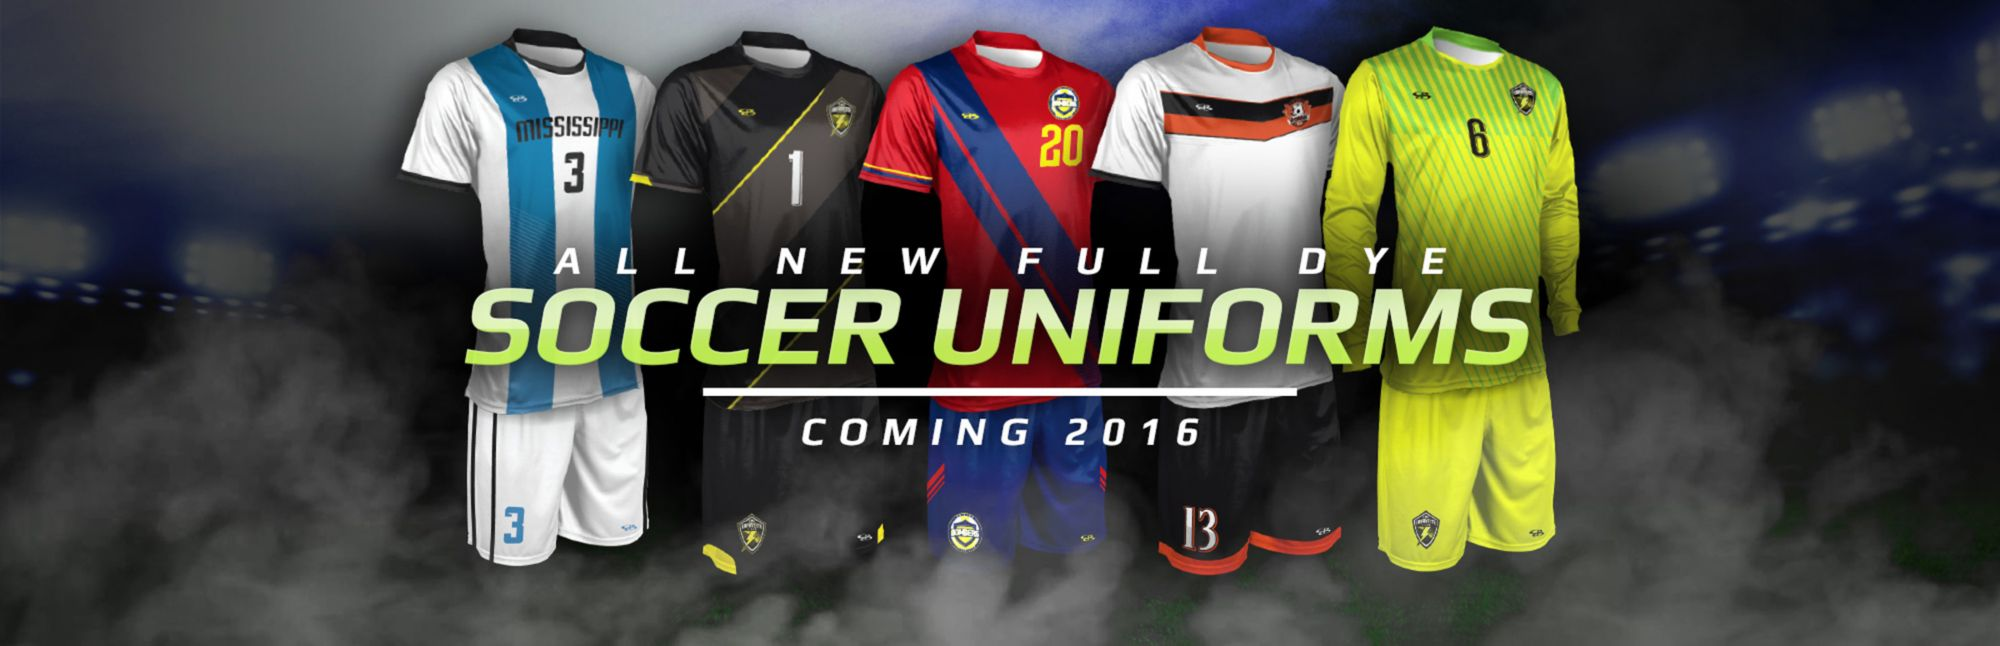 New Soccer Uniforms Coming Soon